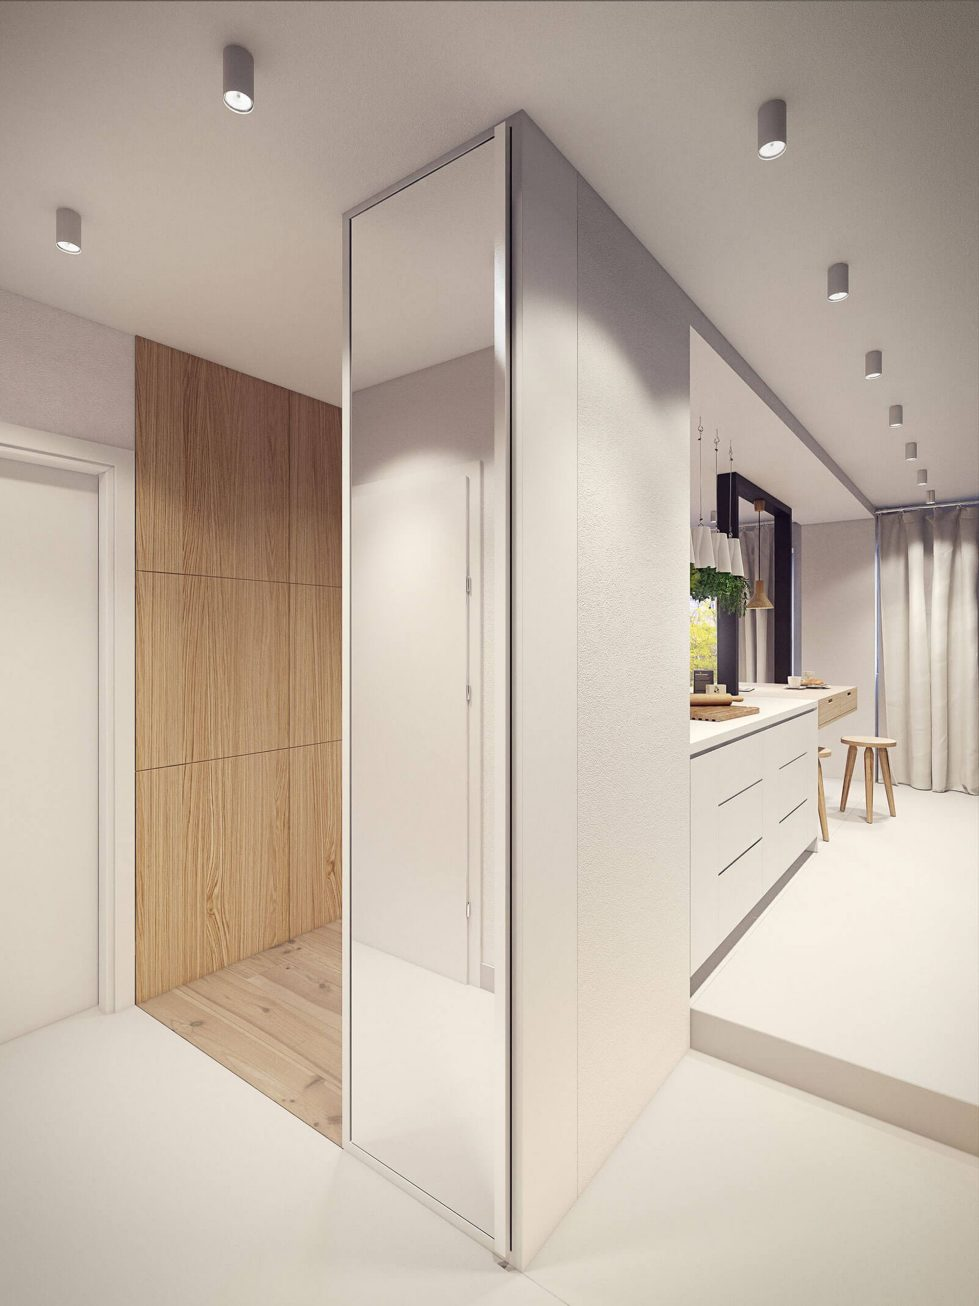 Designing project of the stylish apartments in Lodz 16